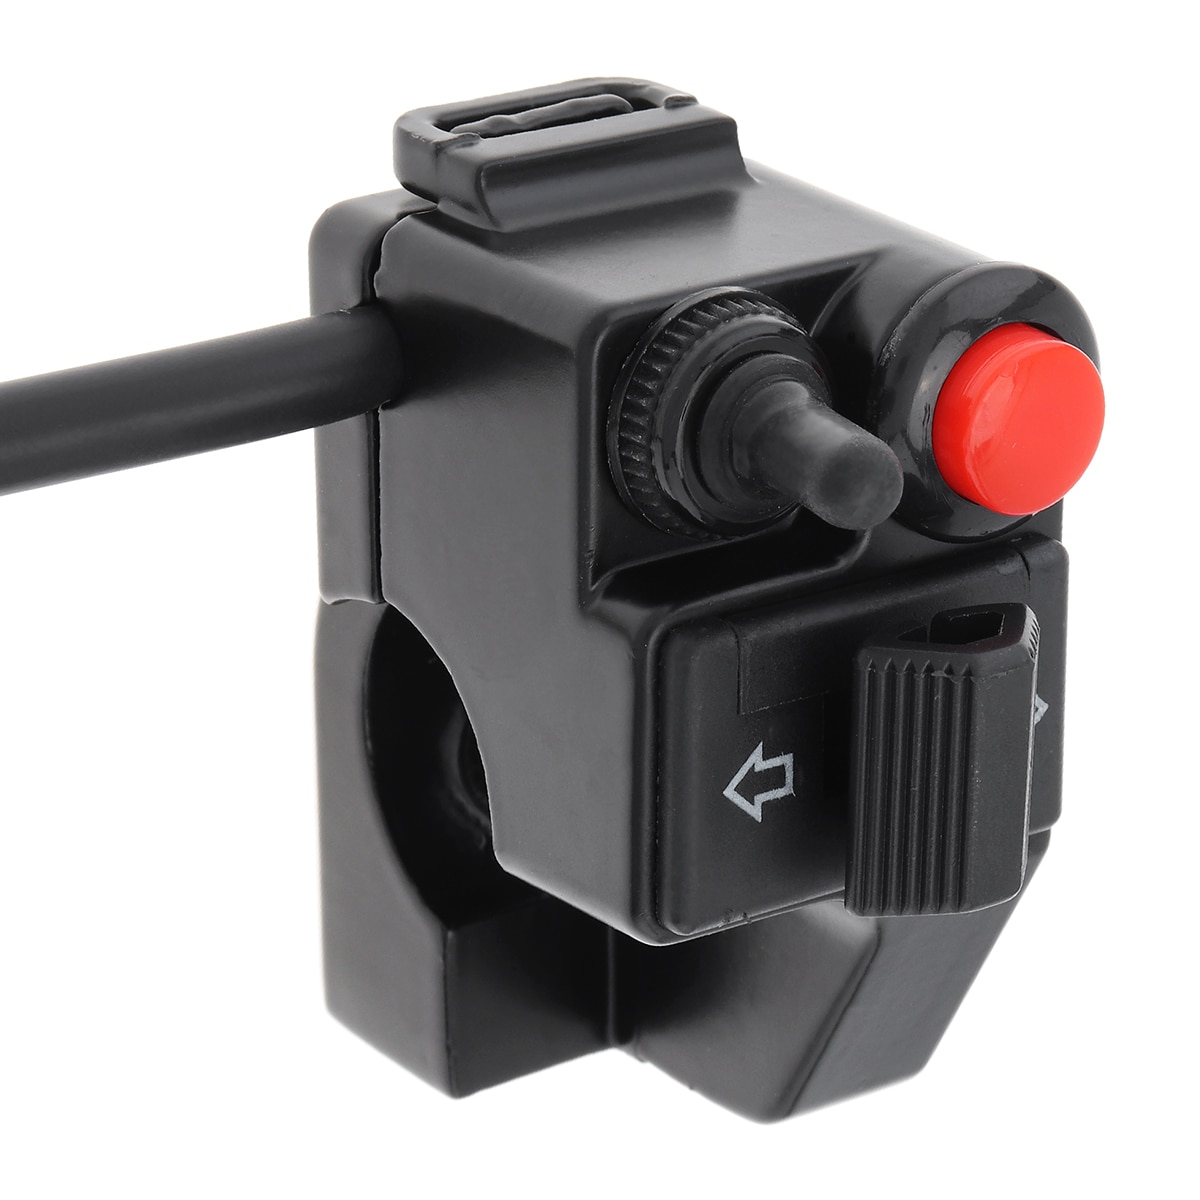 Motorcycle Accessories 22MM Tri Function Speaker / Steering Headlight / Flameout Switches for Motorcycle General hot